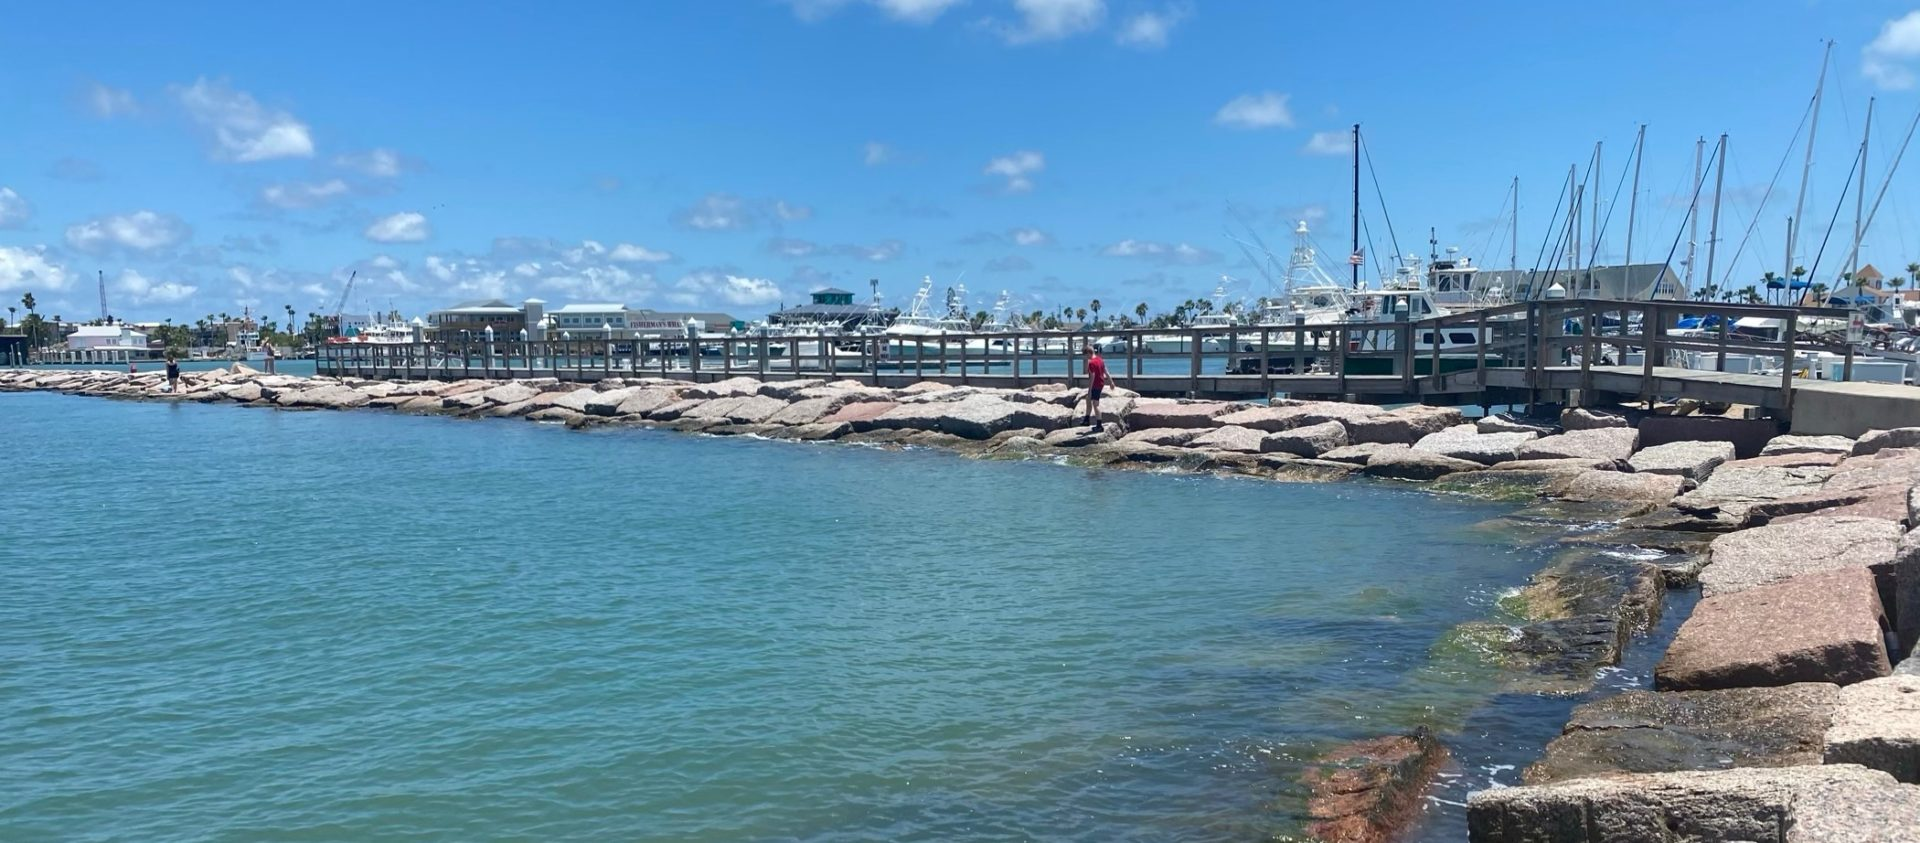 Port Aransas Explorer: What to Do, See & Eat in Port A